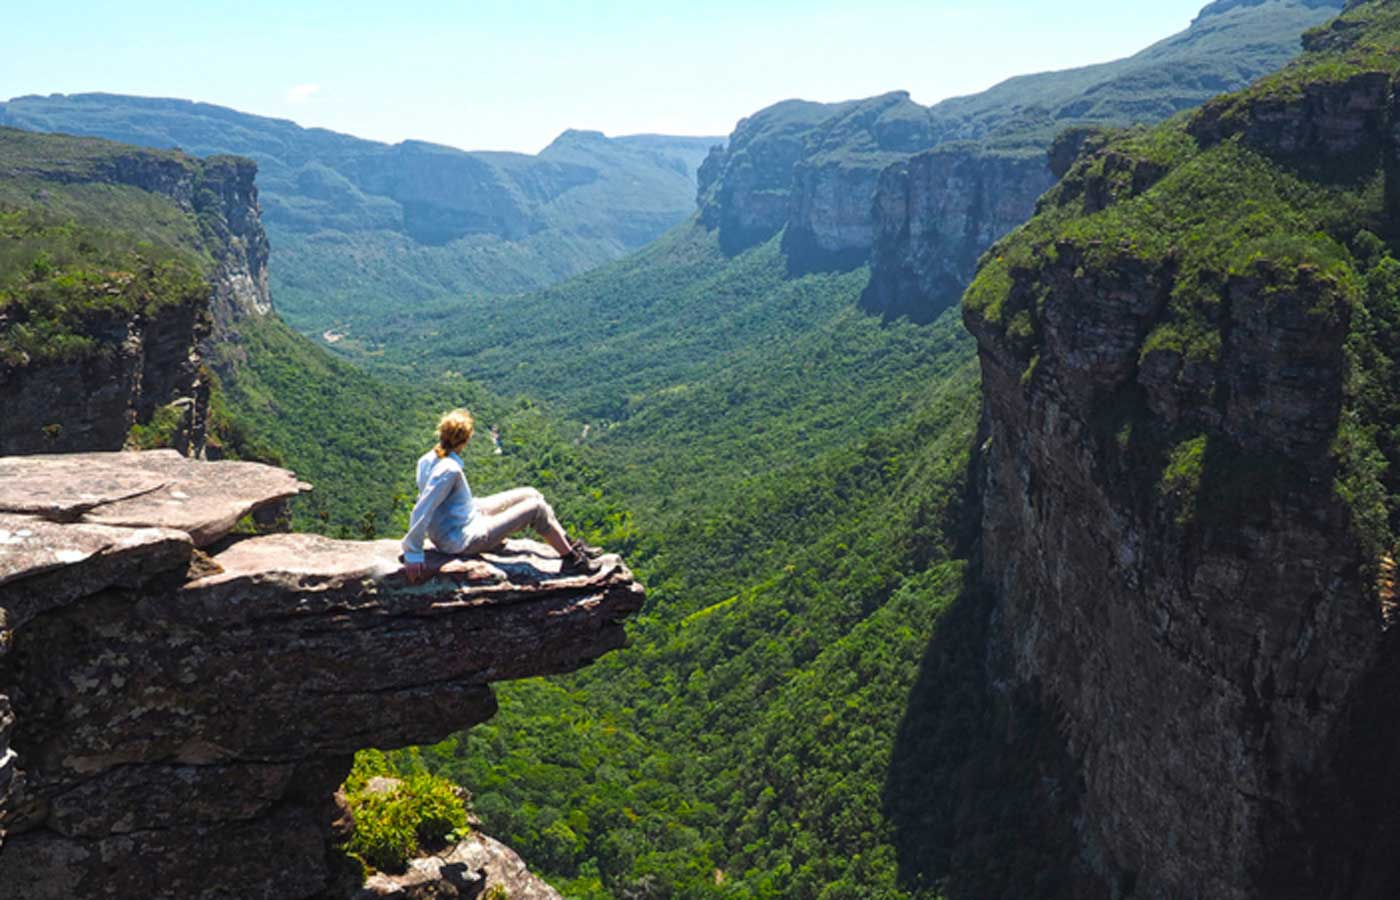 Views from Pai Inacio Mountain in Chapada Diamantina, Bahia, Brazil